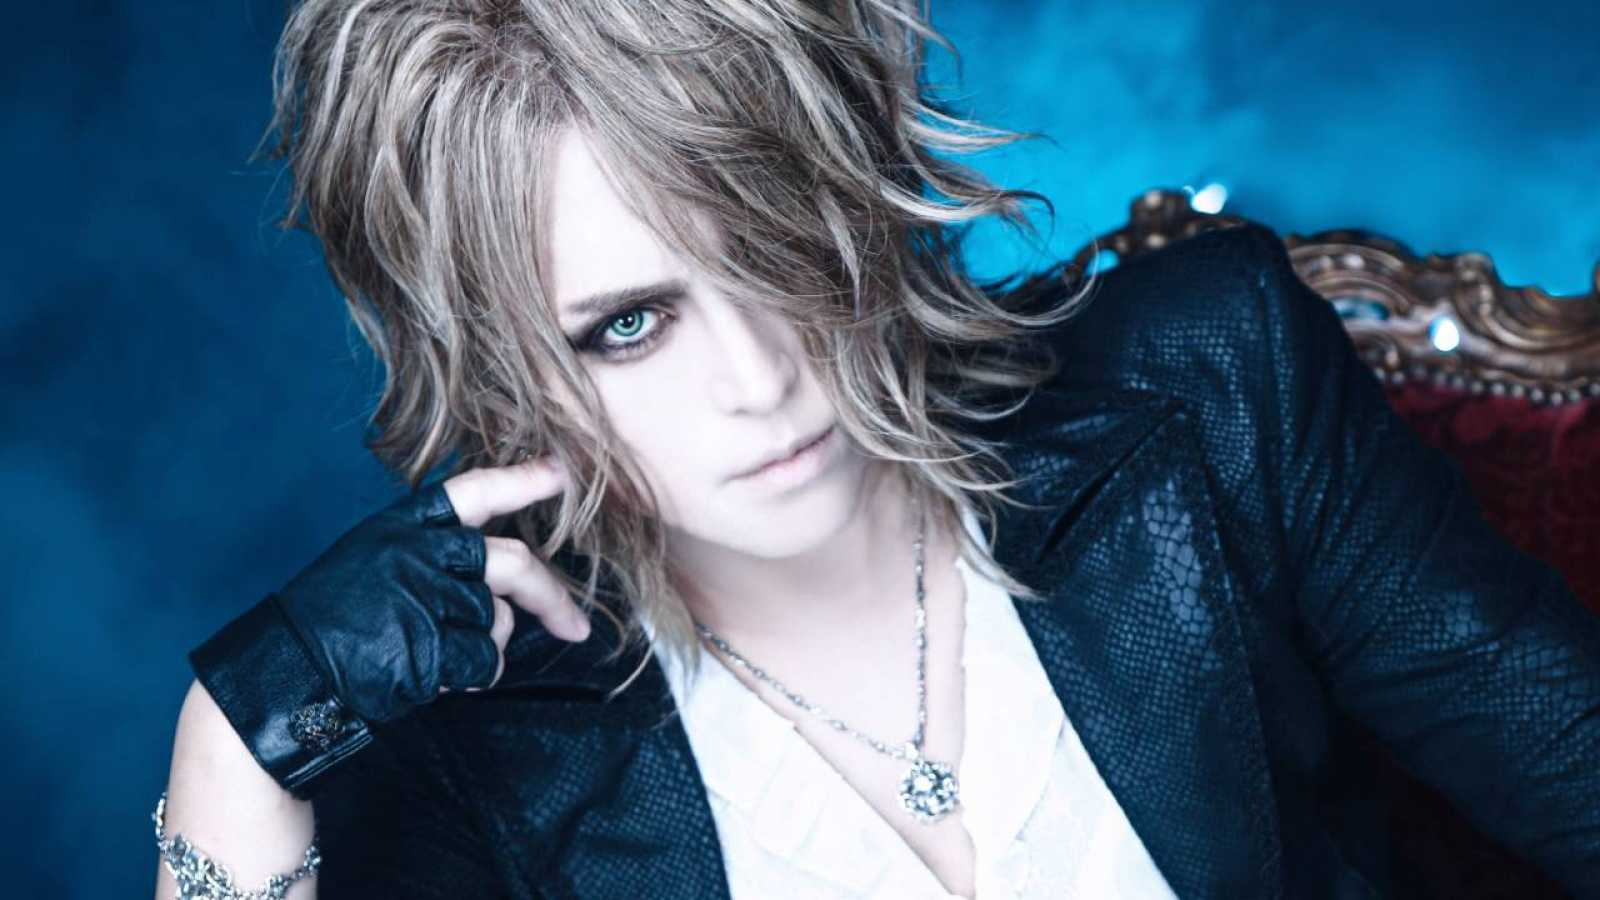 Entrevista con Kamijo © CHATEAU AGENCY CO., Ltd. All rights reserved.